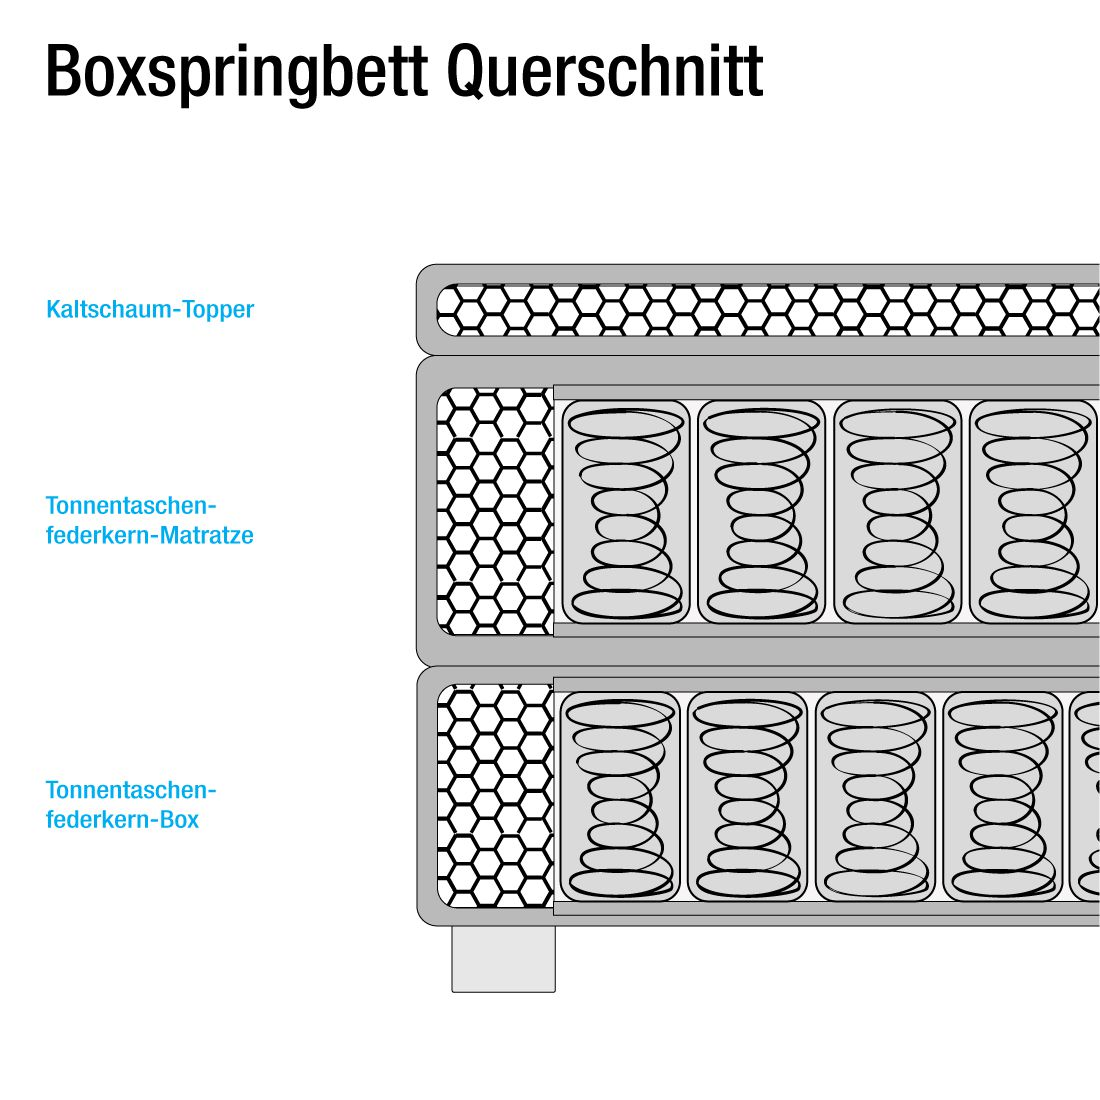 Boxspringbett aufbau  Boxspringbett Deluxe Night - Webstoff | home24